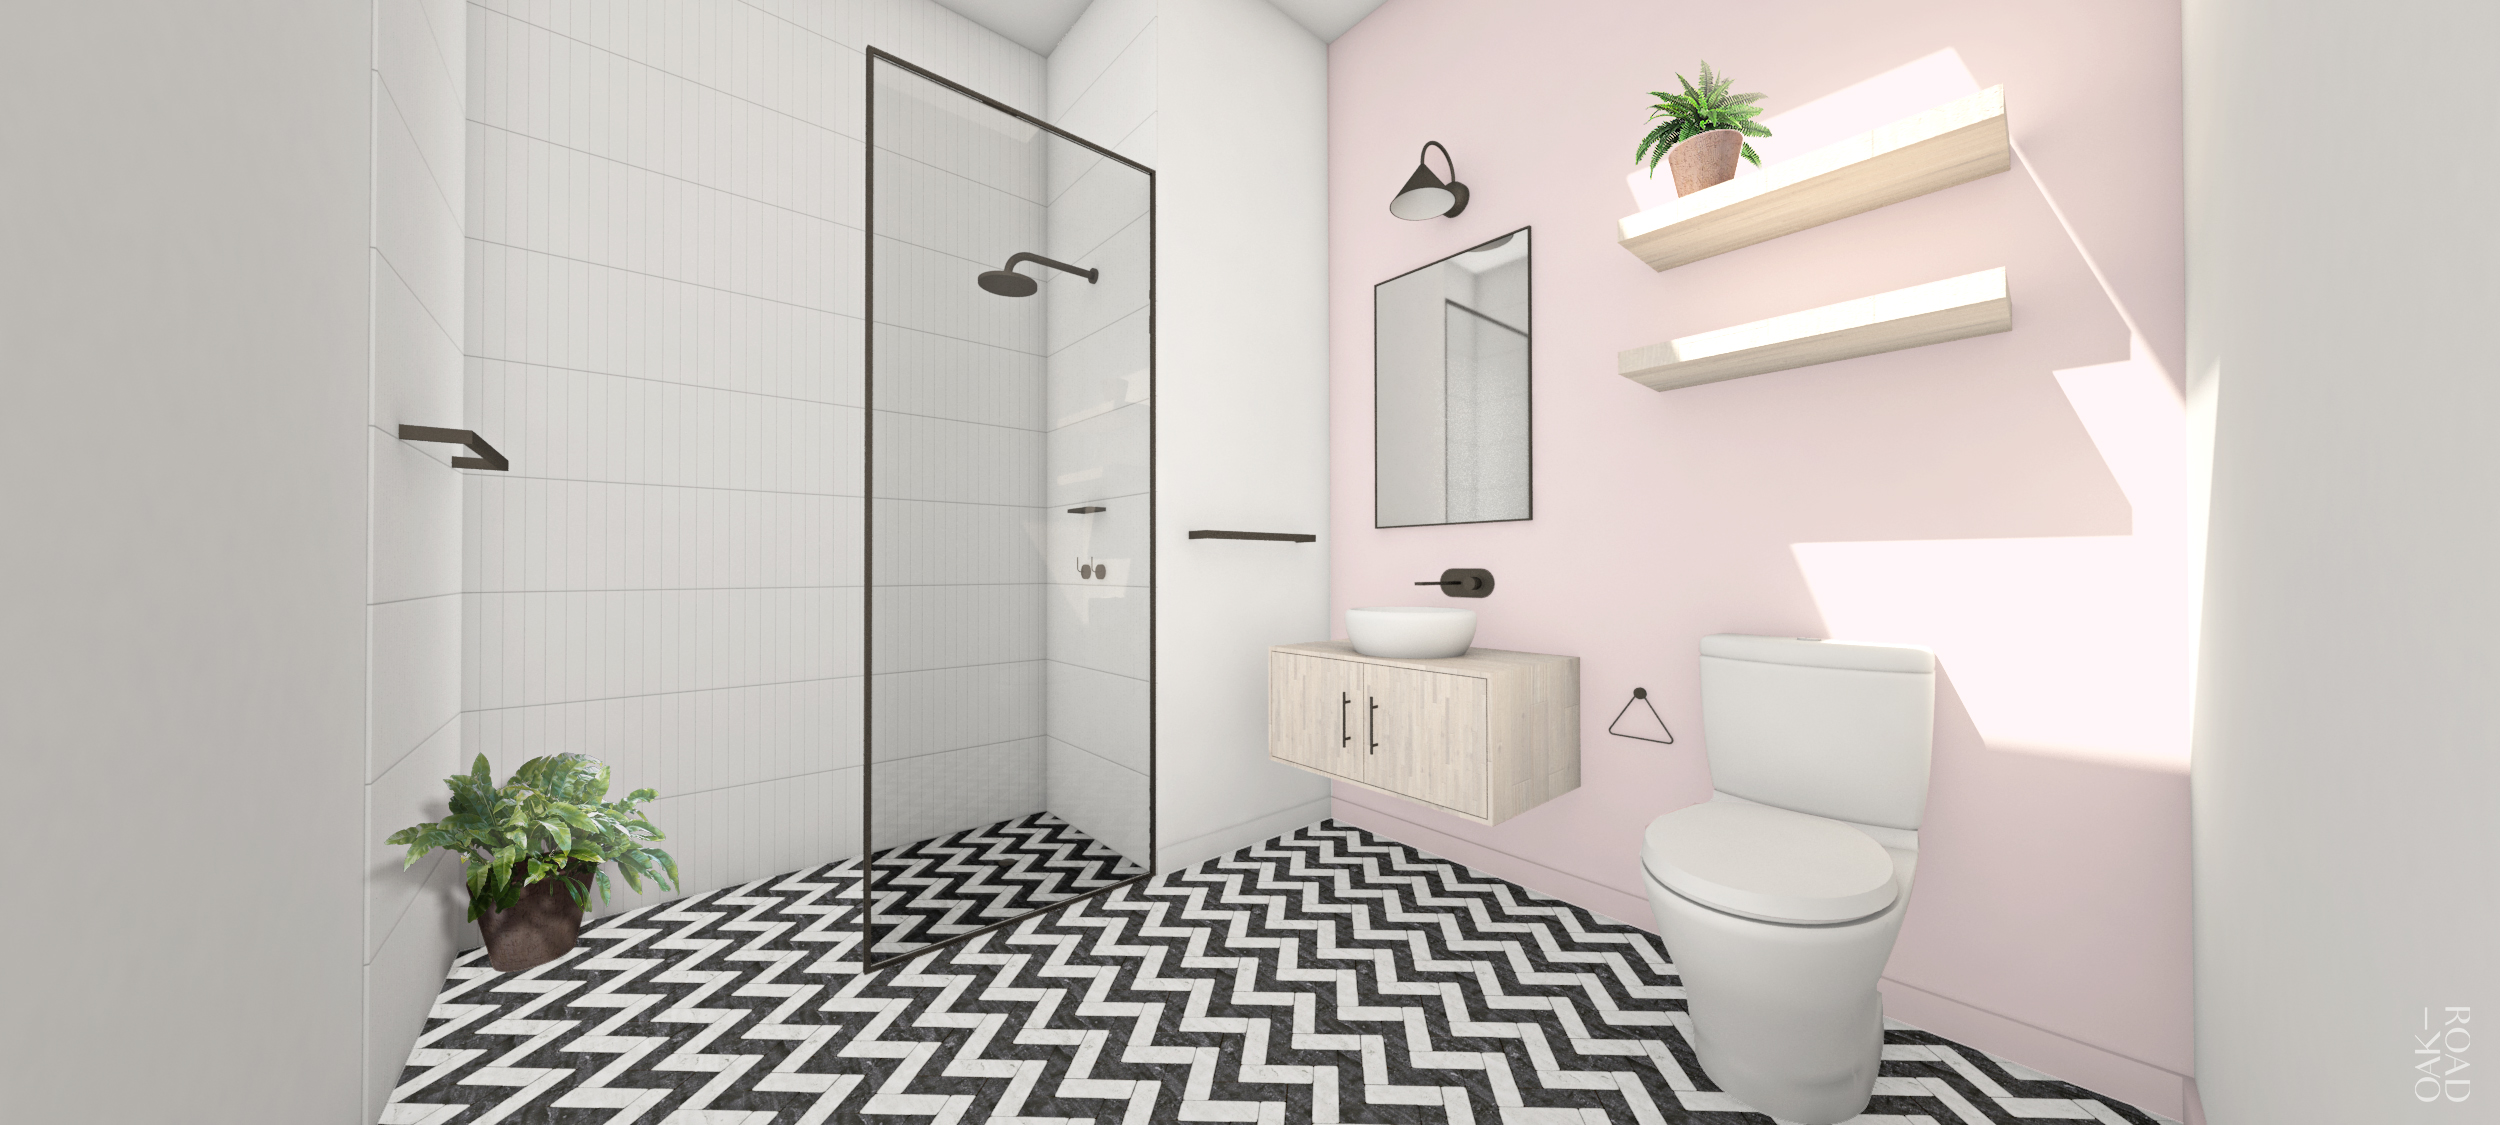 Micro22-Interior-Bathroom.jpg